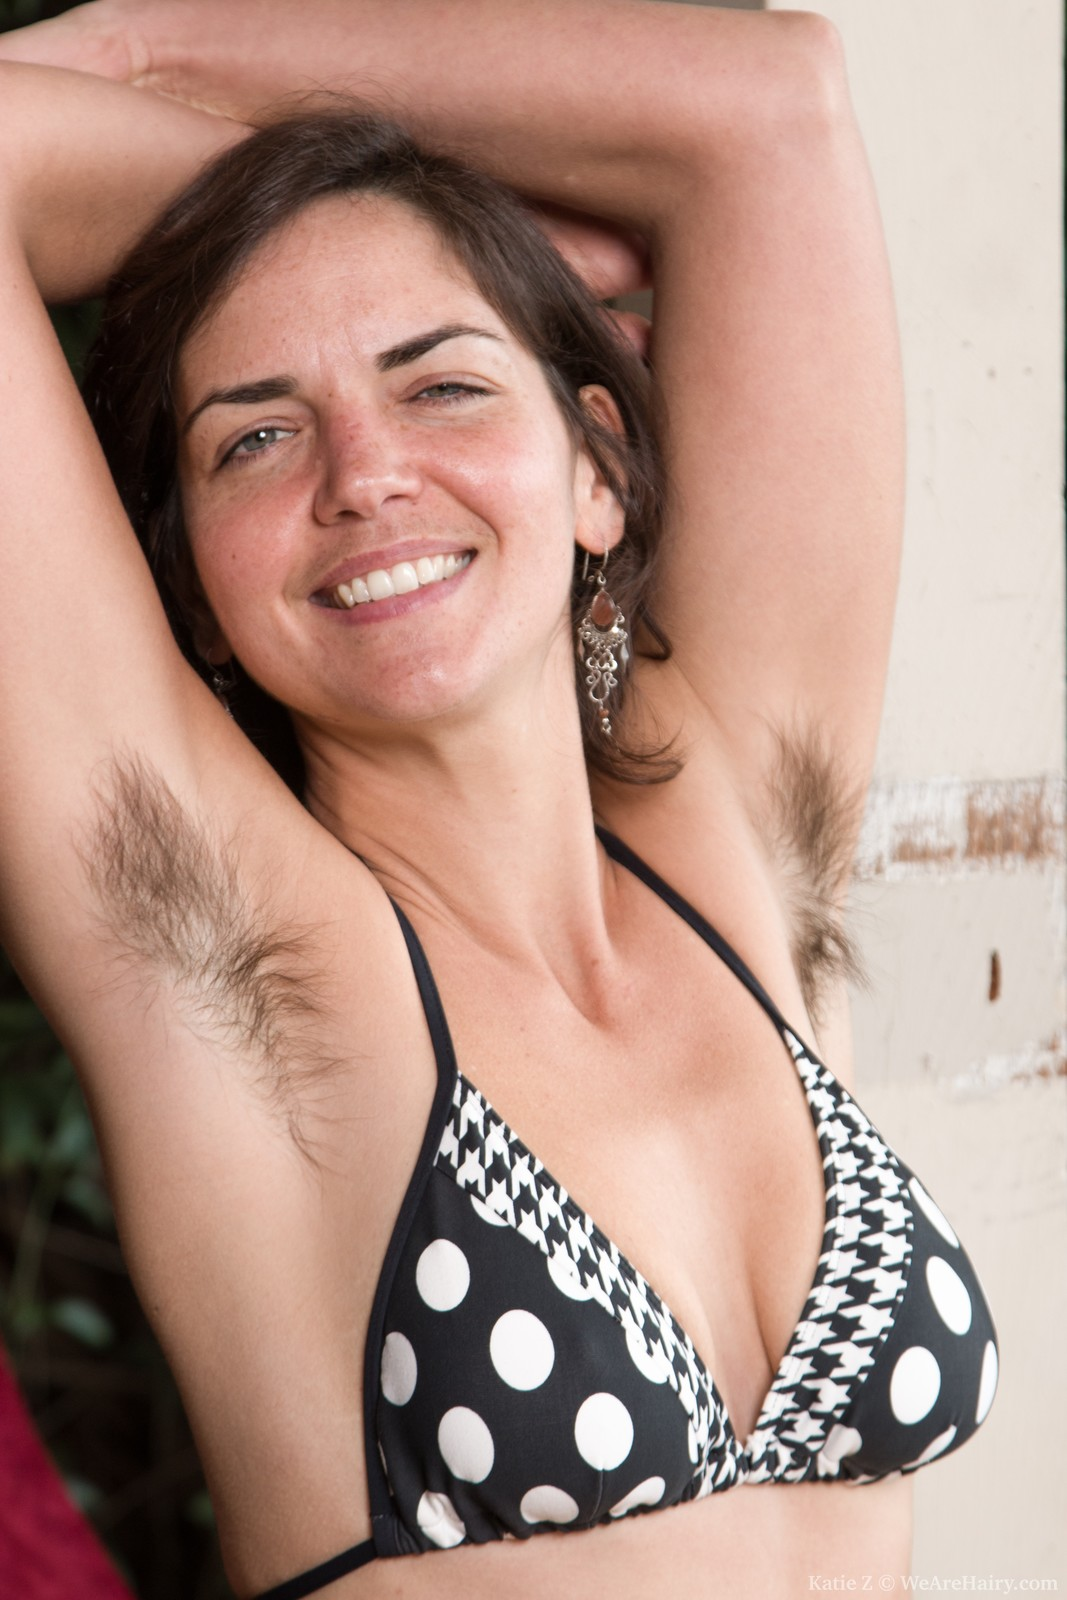 Can hairy armpit women know, that